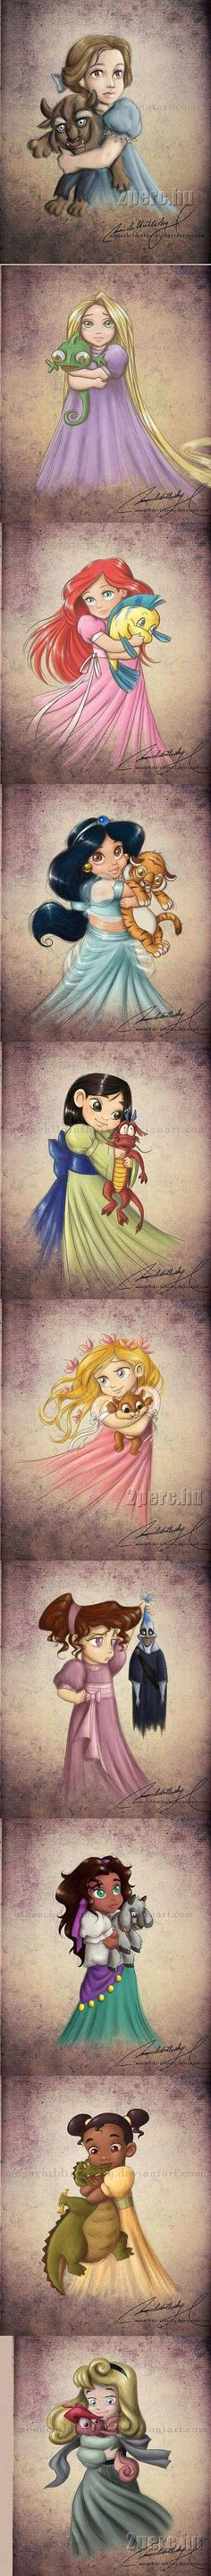 Disney princesses before they grew up and met their Prince Charming's.    http://moonchildinthesky.deviantart.com/